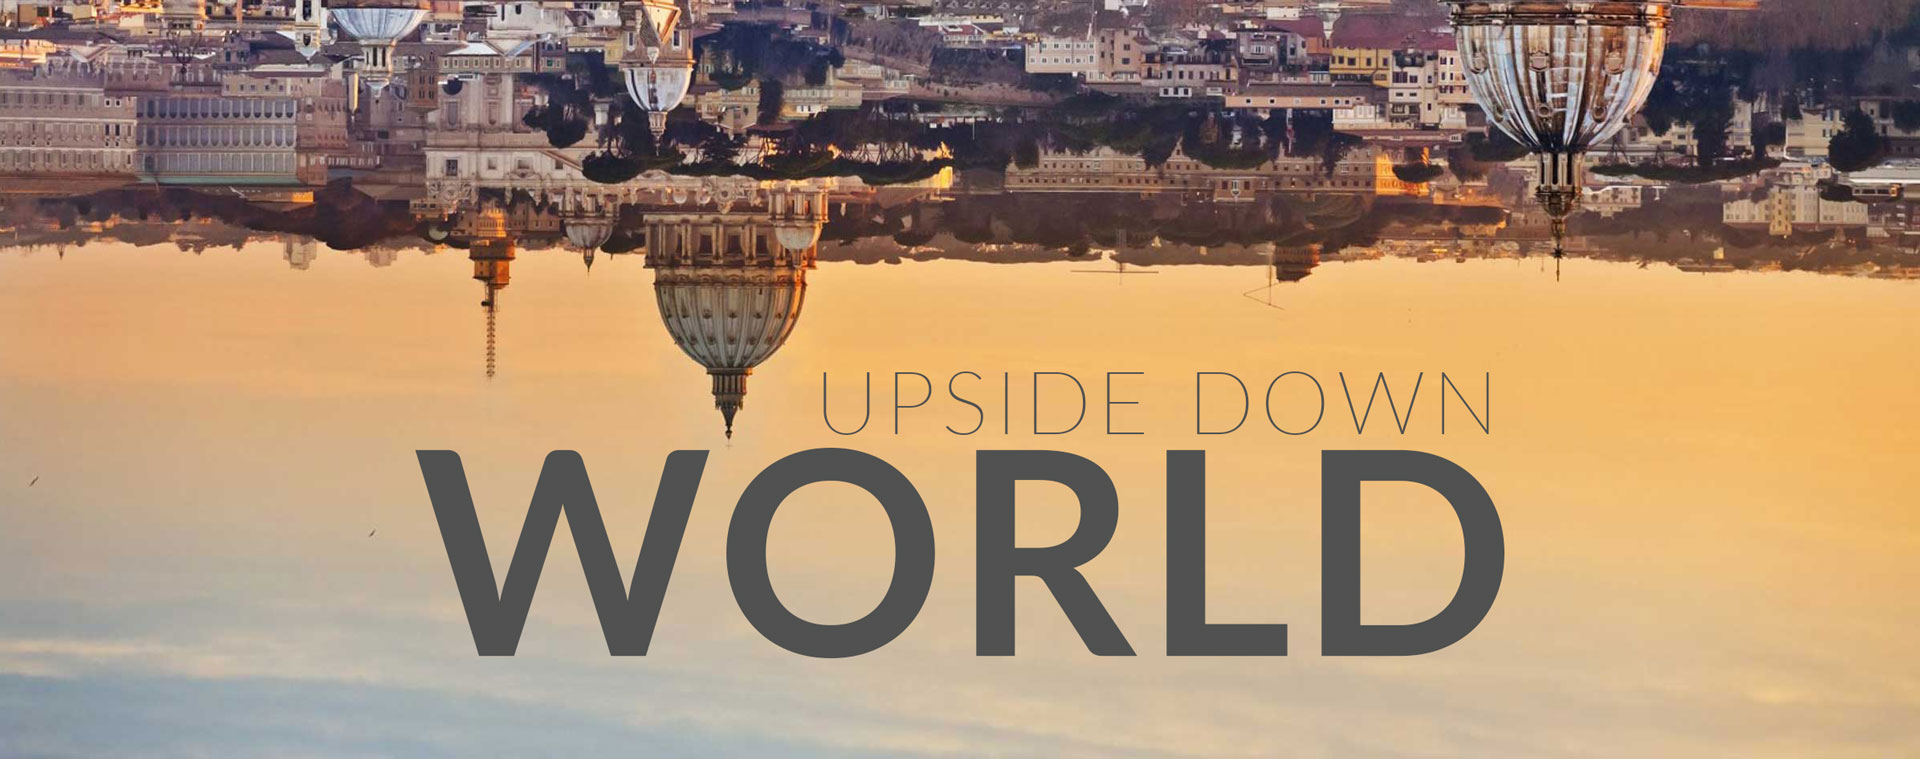 the world upside down World upside down posted by margaret manning, on may 29, 2018 topic: a slice of infinity early in his ministry, according to matthew's gospel, jesus preached a.